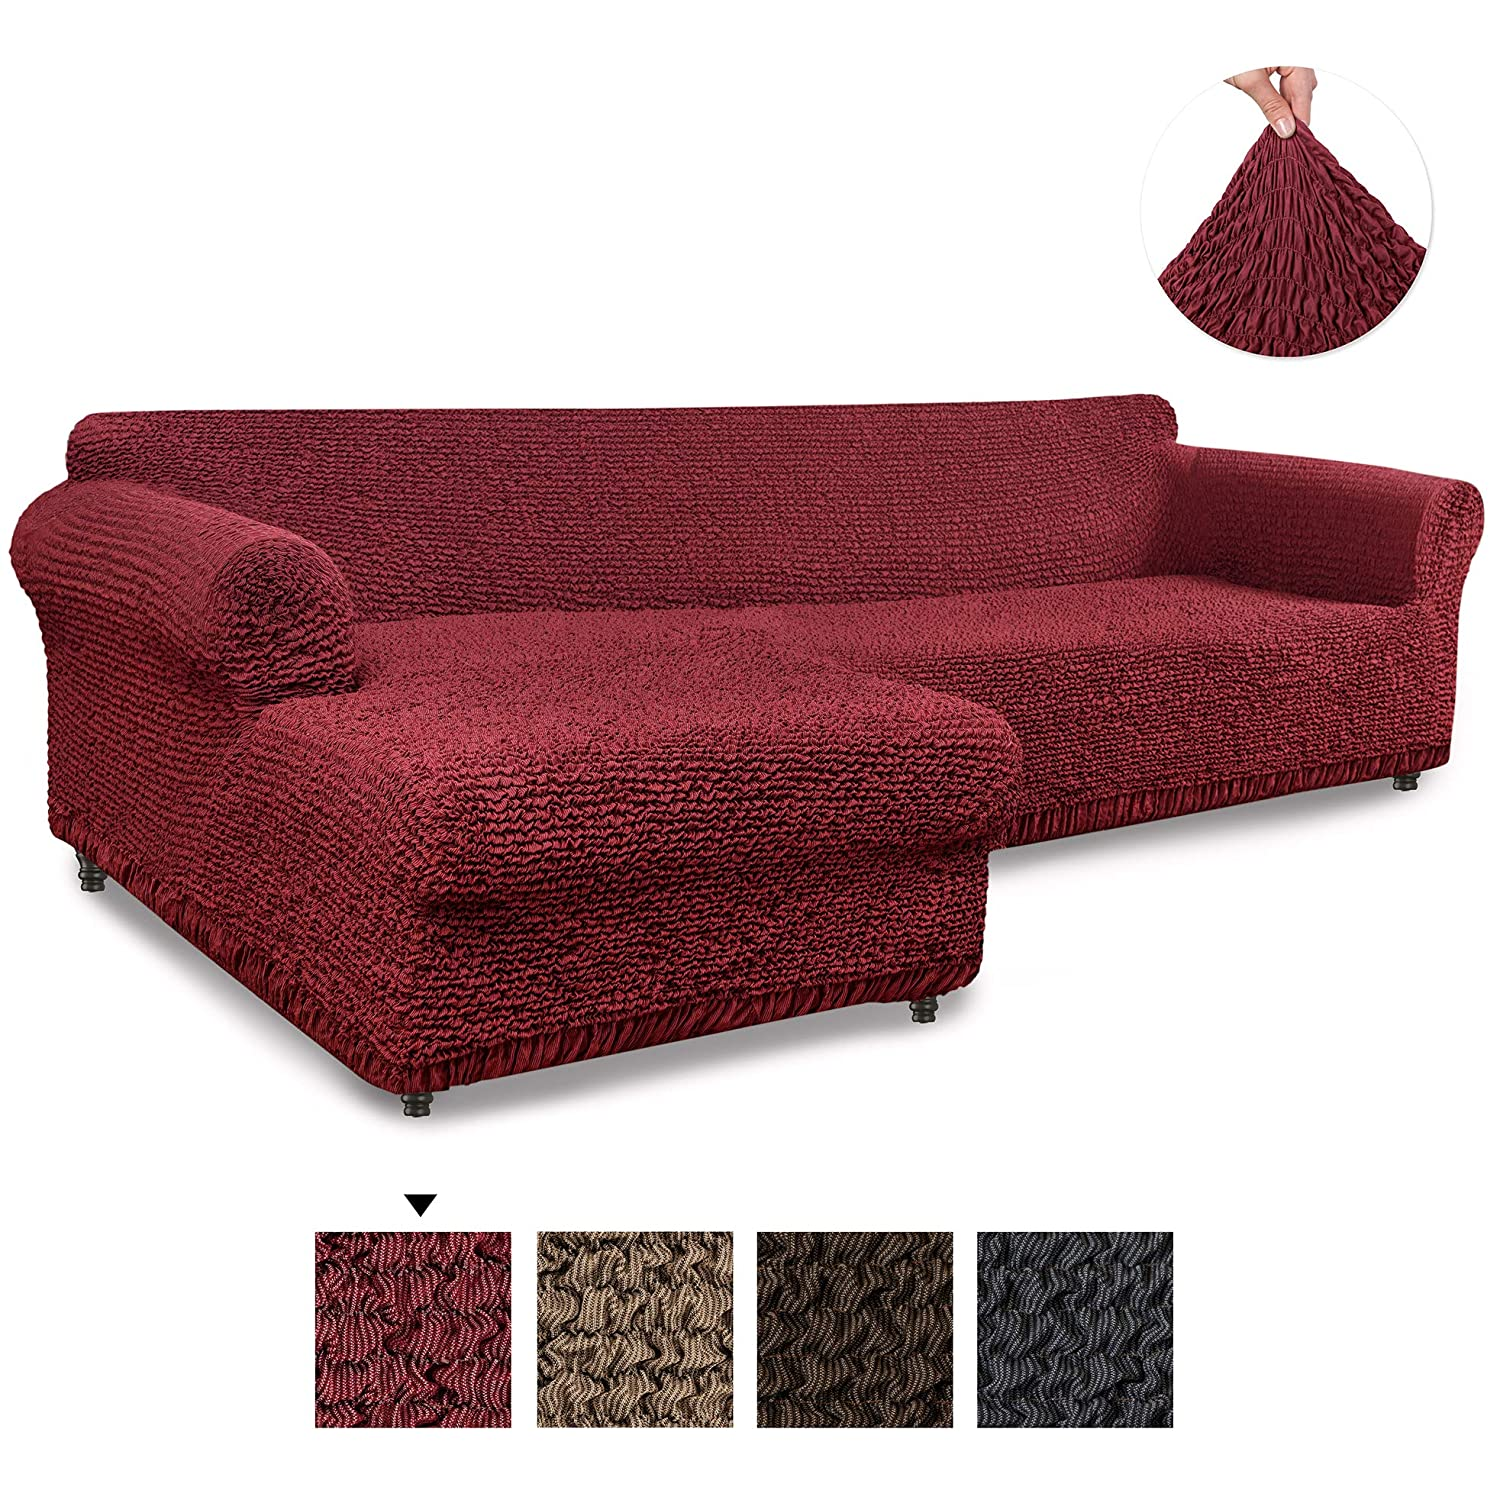 Brown Corner Couch Cover Sectional Sofa Cover Mille Righe Collection 1-piece Form Fit Stretch Furniture Slipcover Cotton Fabric Slipcovers Corner Slipcover Corner Sofa